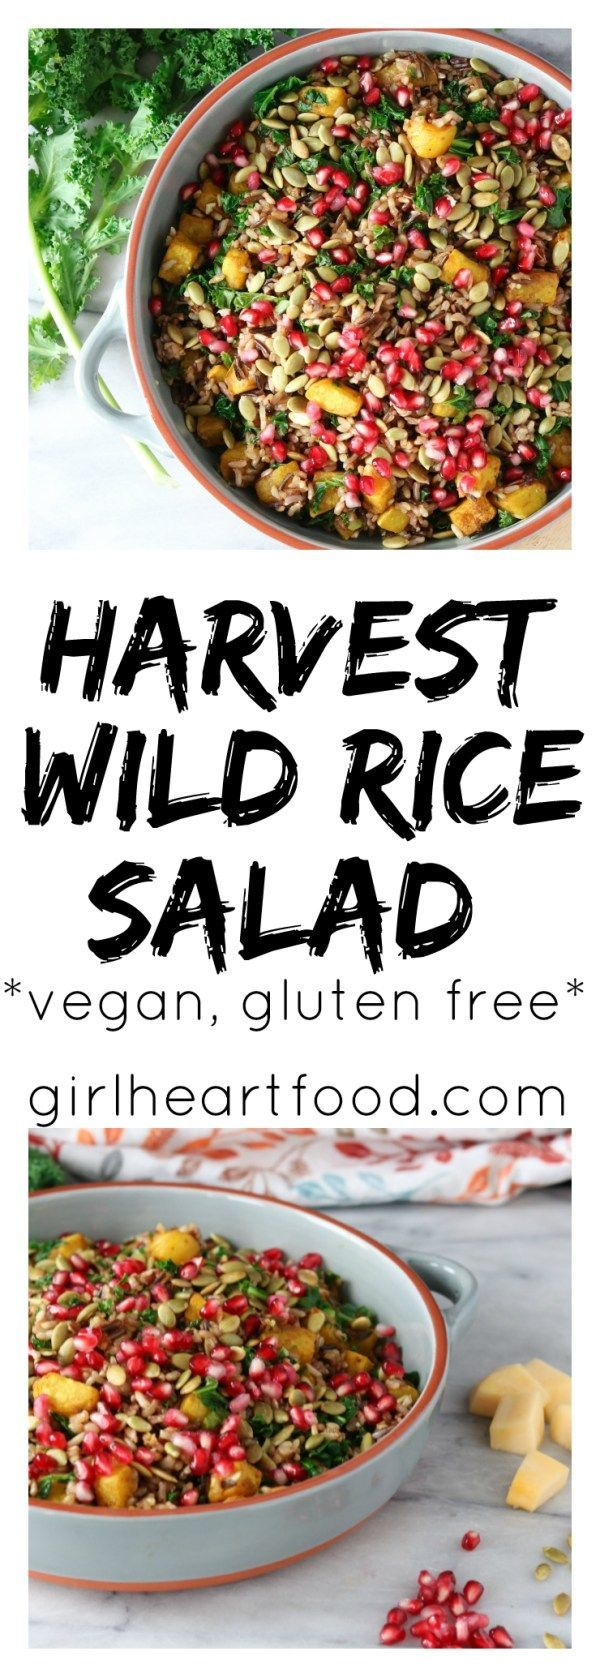 This salad is a yummy combination of a wild rice blend, saut�ed kale and roasted acorn squash. The whole thing is then garnished with sweet pomegranate aerials and pumpkin seeds. #vegan #glutenfree #harvestsalad